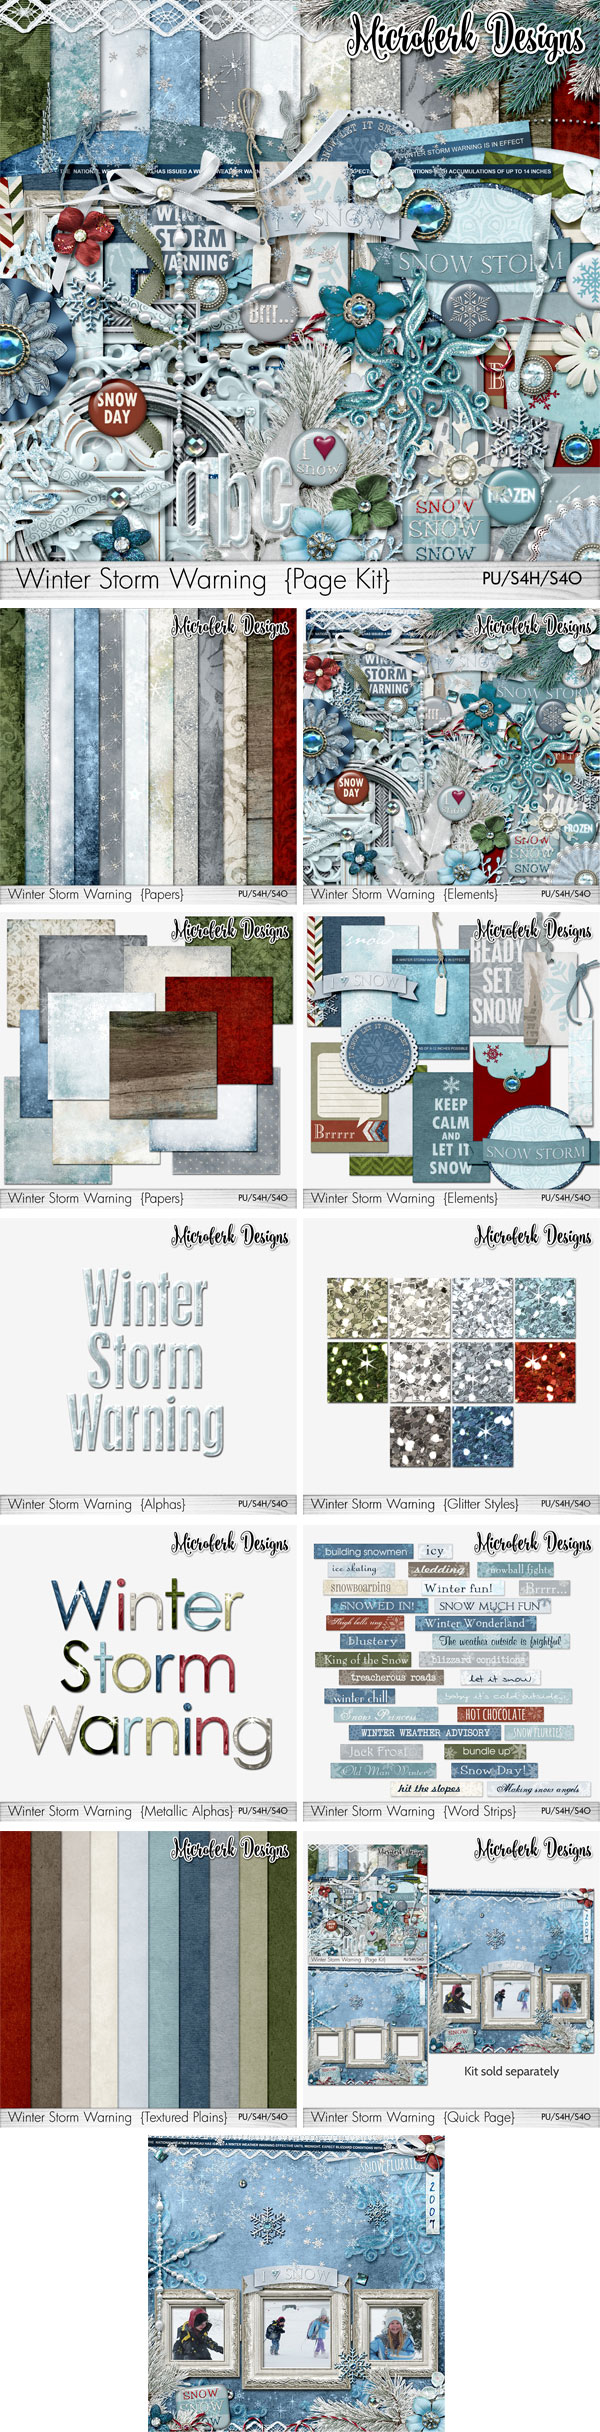 Winter Storm Warning!~ Add Ons and Bundles by Microferk Designs @Oscraps on SALE!